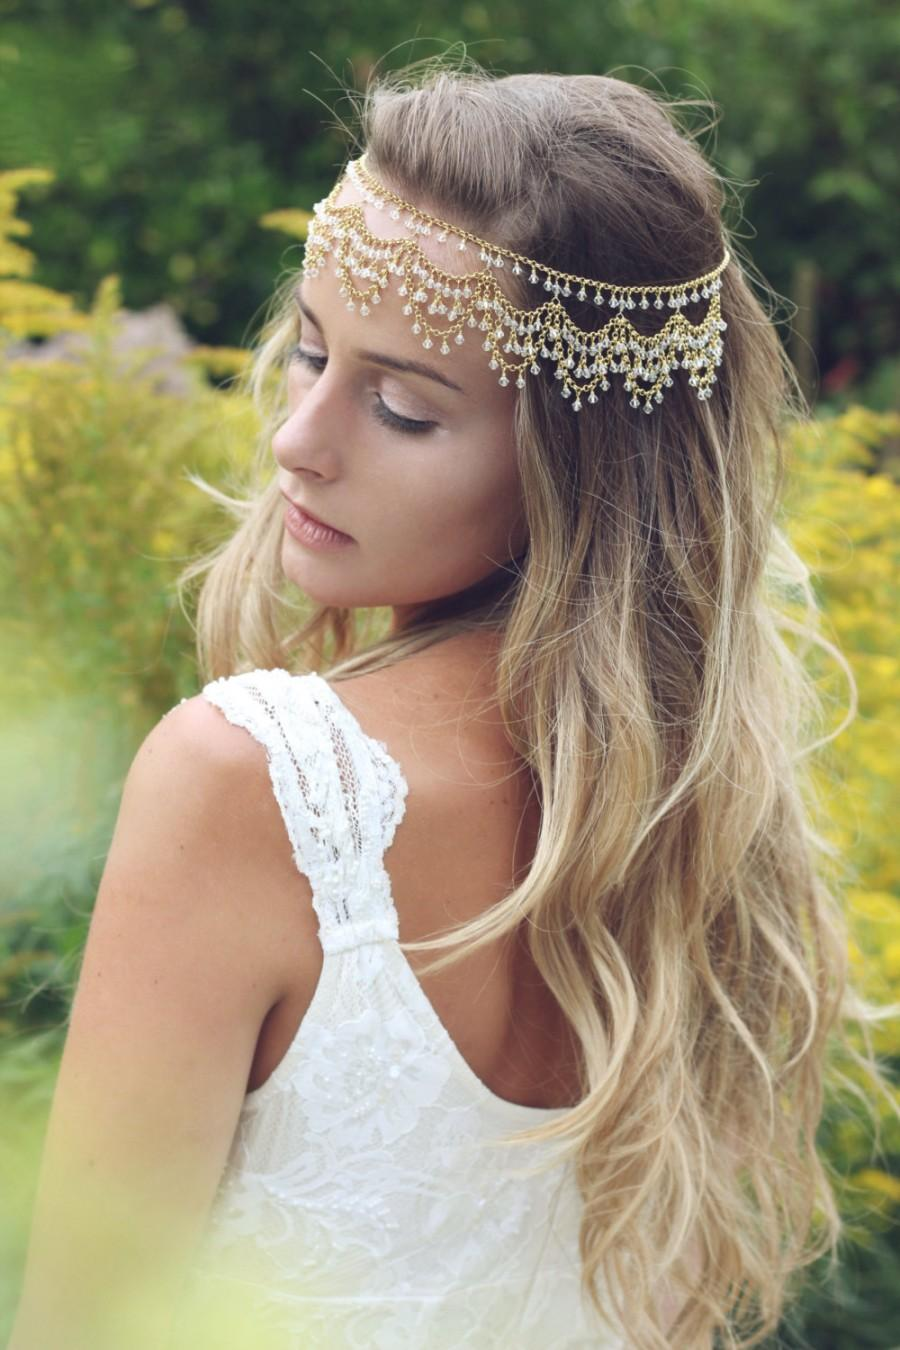 Bridal Headpiece Bohemian Head Chain Forehead Indian Headchain Boho Wedding Gold Hair Accessories Jewelry